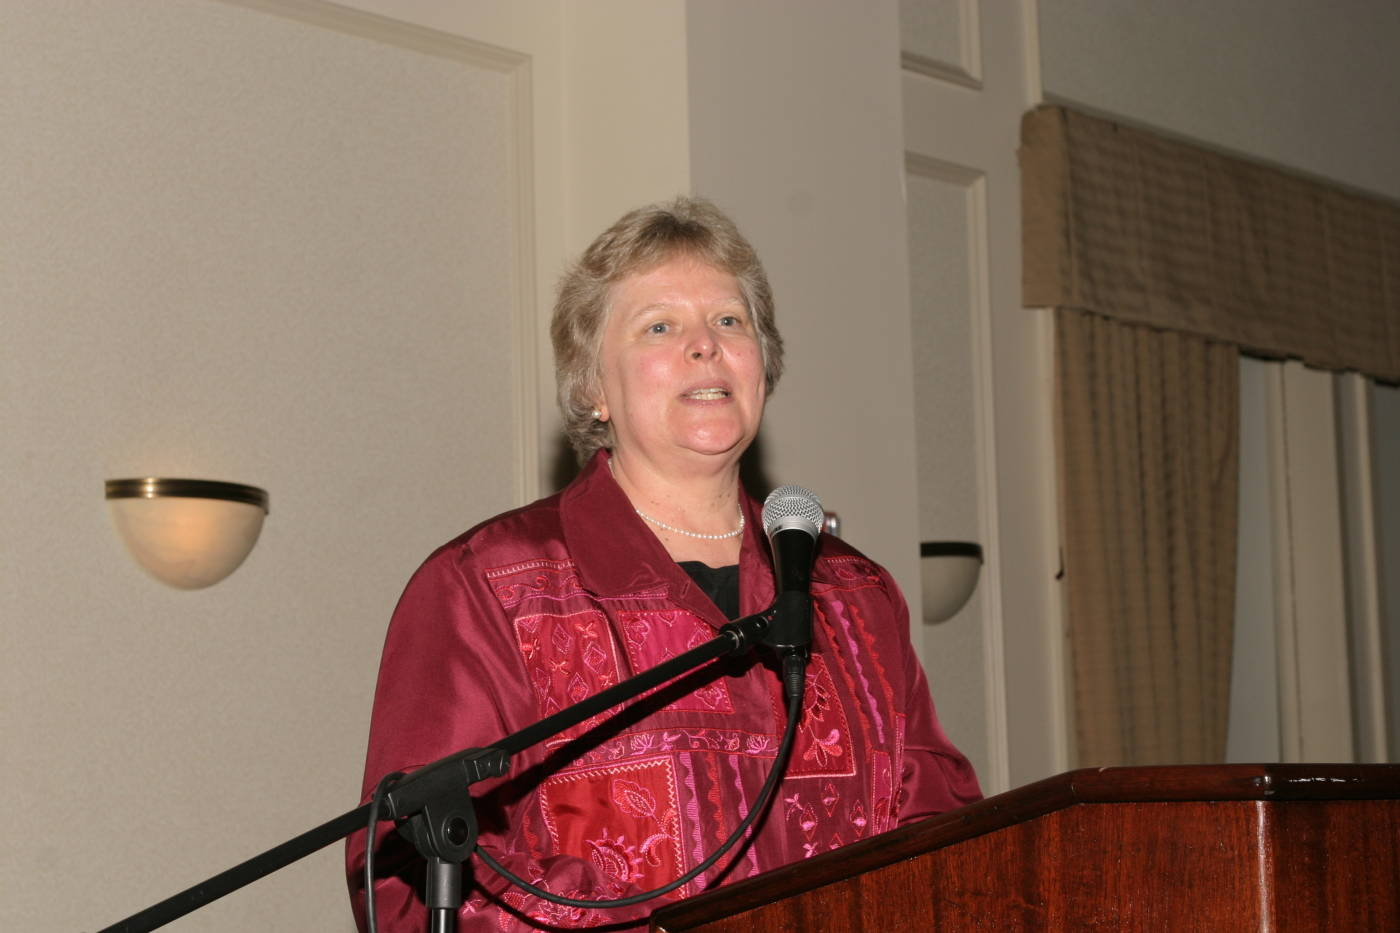 Dr. Karen Laughlin, Dean of Undergraduate Studies.